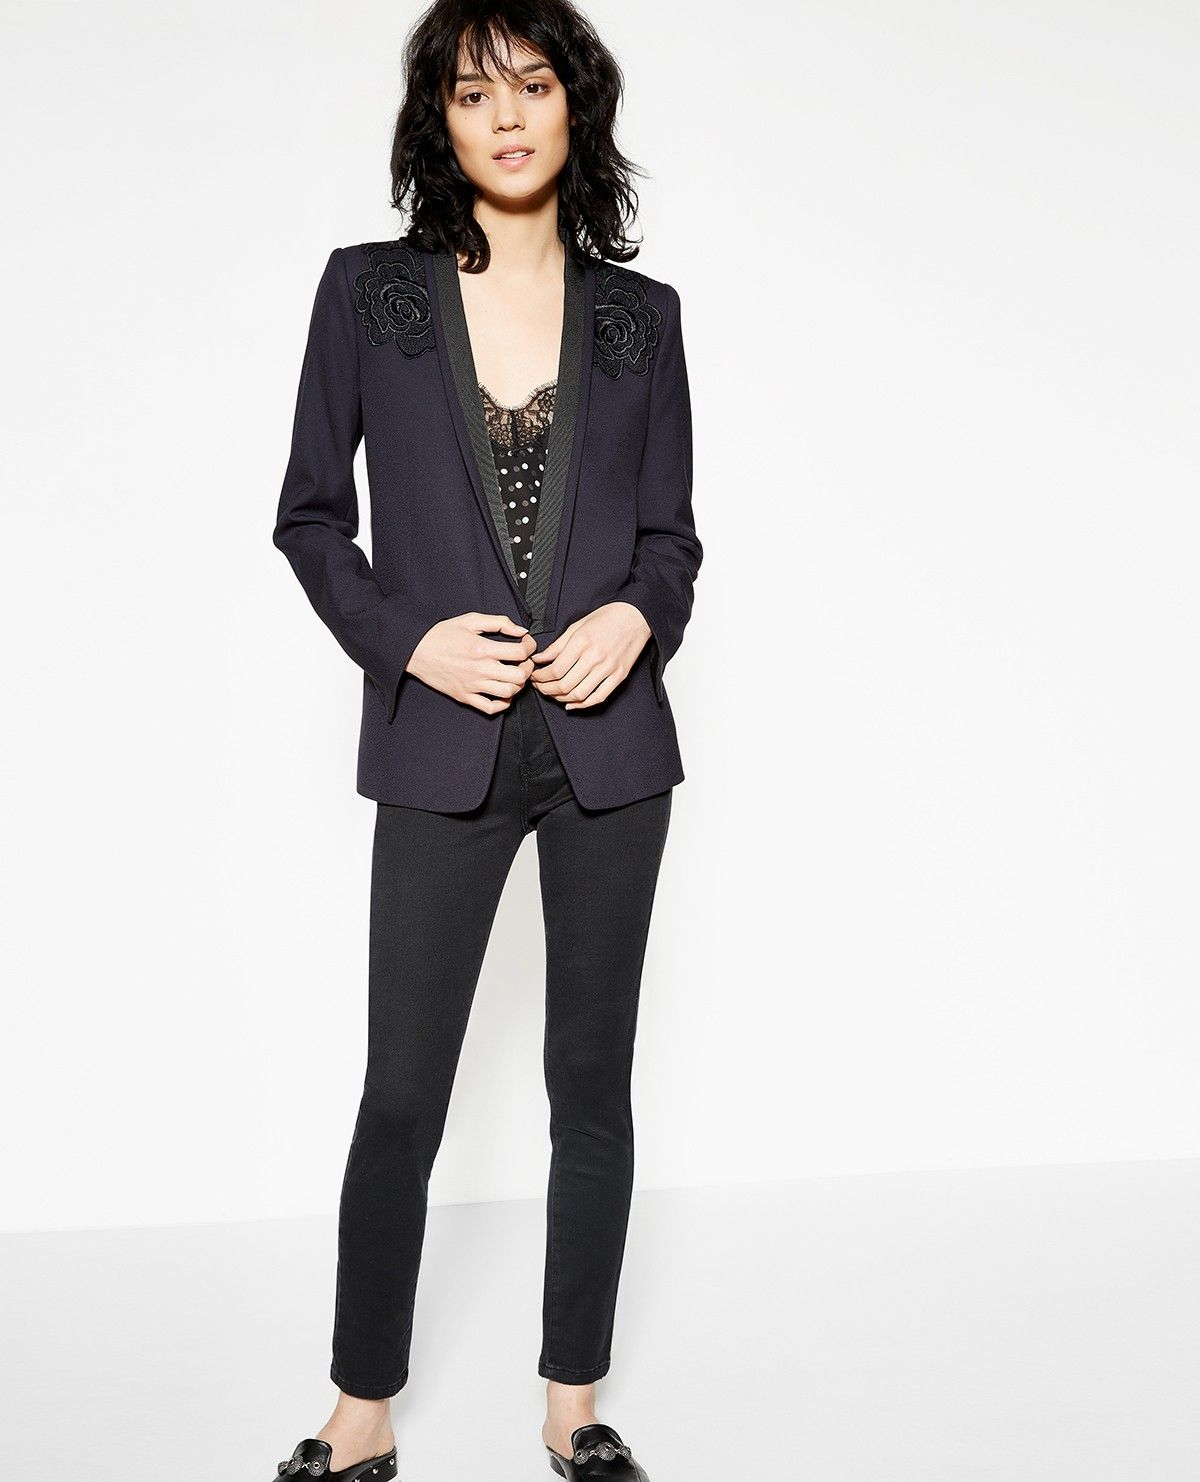 5e49057be1 Women's navy blue embroidered suit jacket - Collection THE KOOPLES ...